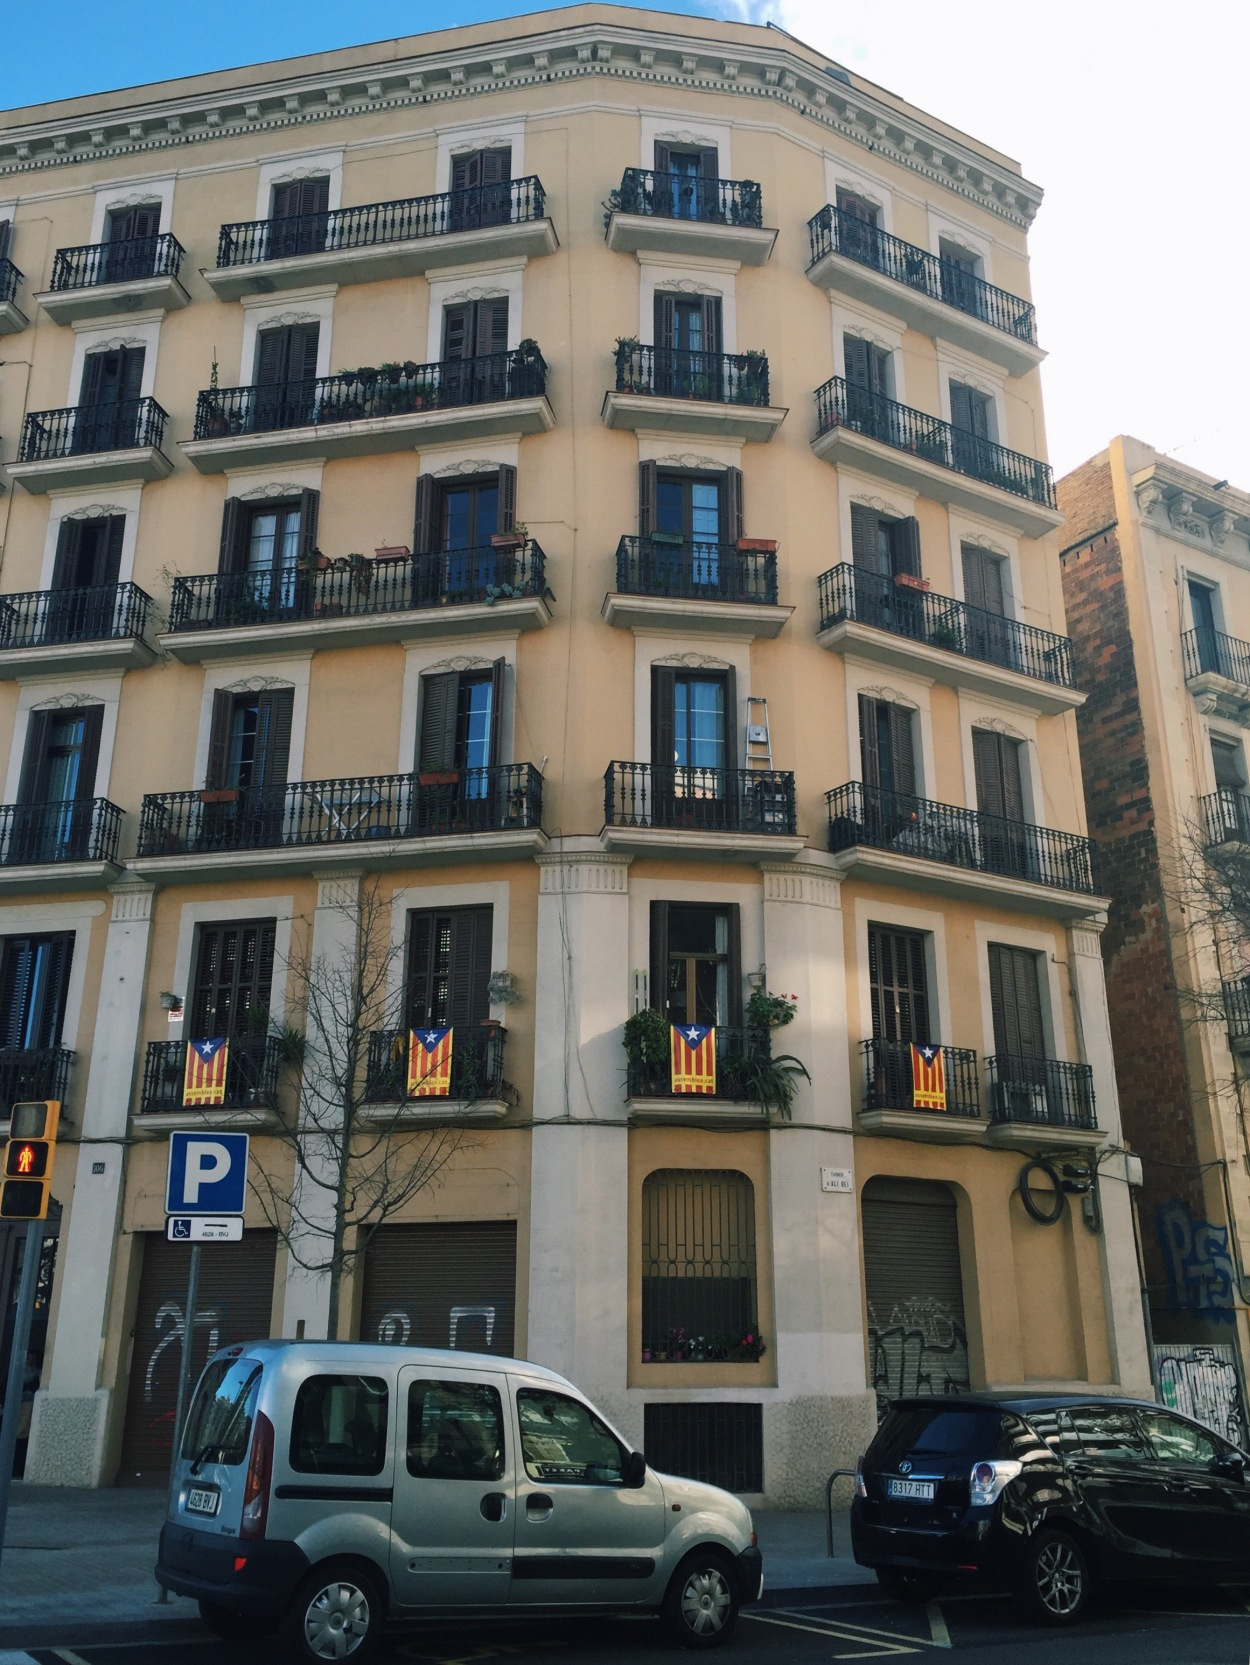 Catalonian flags share space with Catalonian independence flags on balconies everywhere in Barcelona!